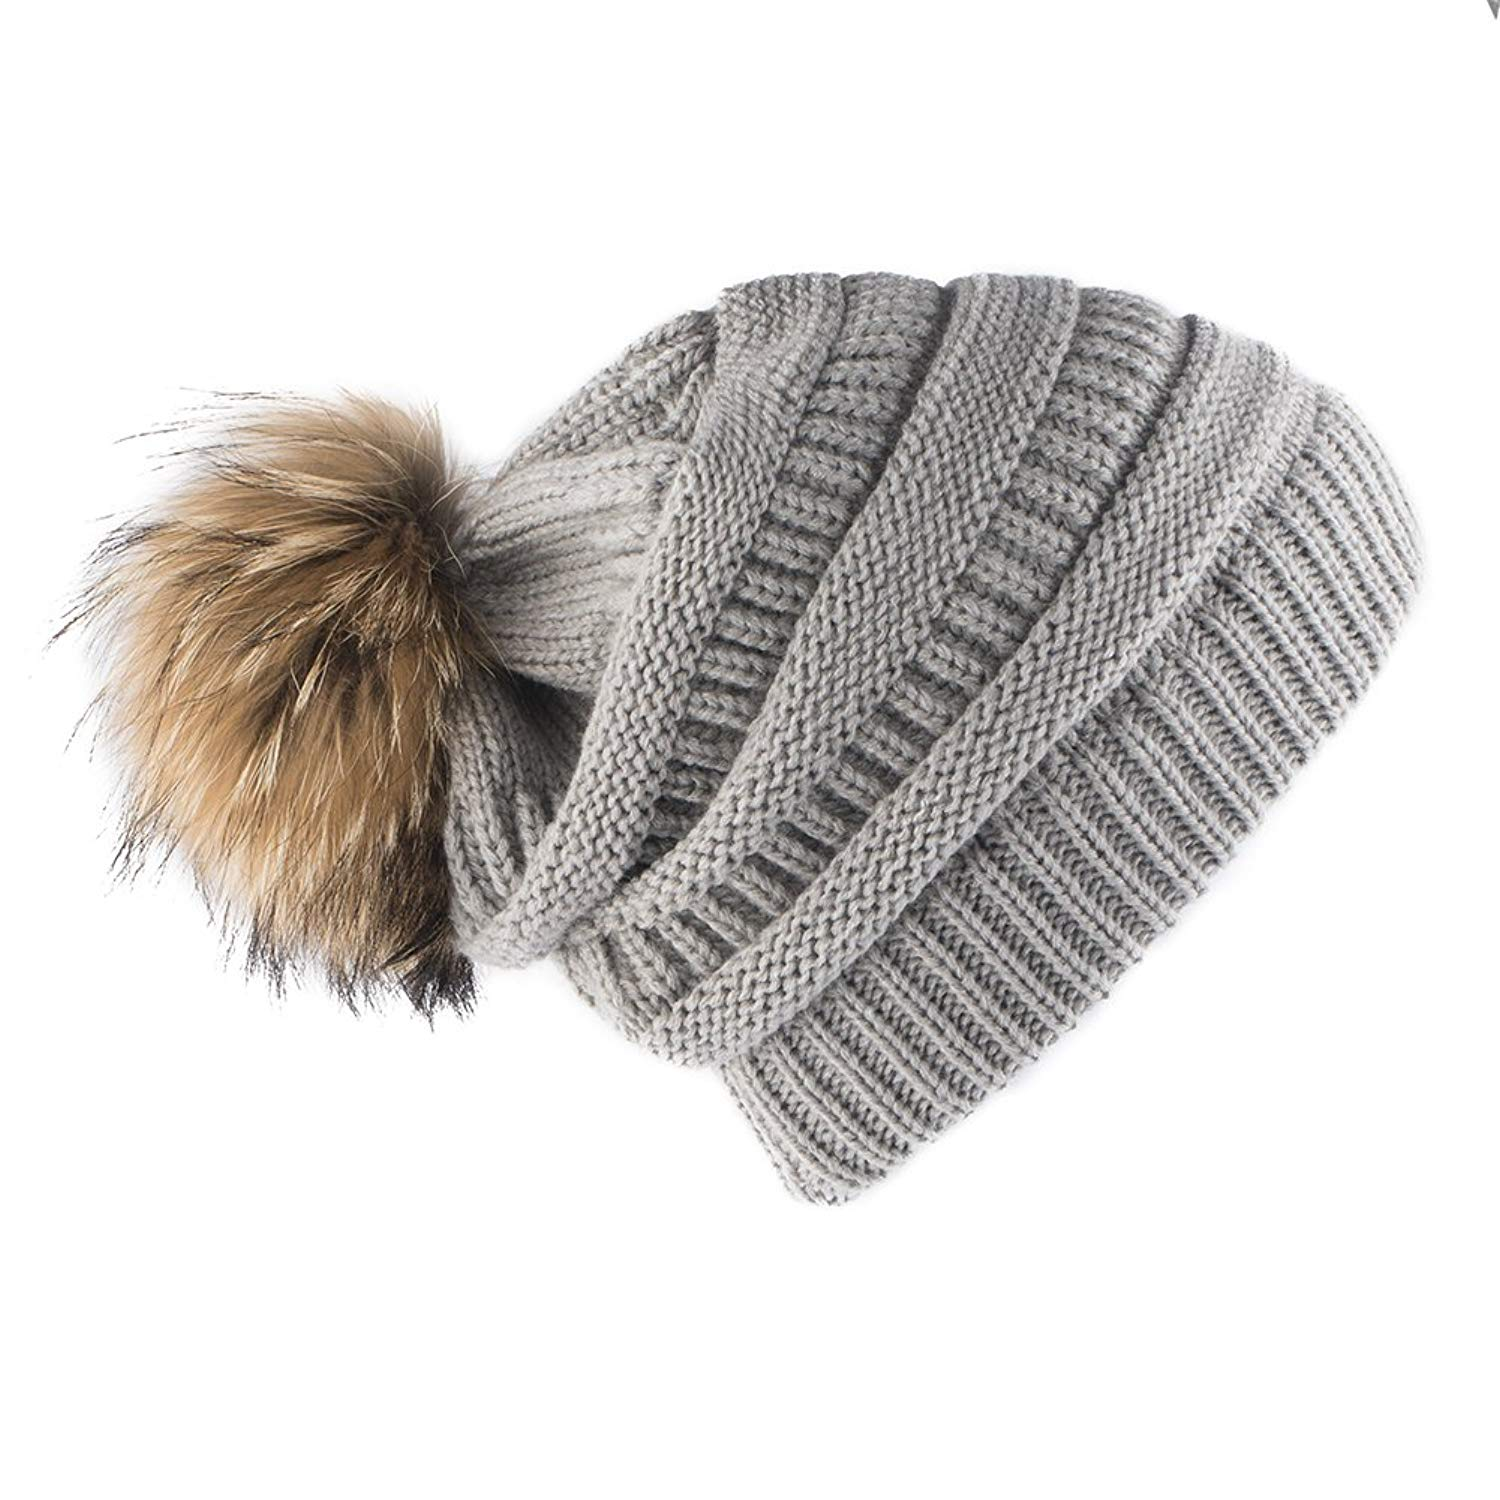 1e48f5ab8bf Roniky Womens Slouchy Knitted Winter Beanie Cap with Real Fur Pom Pom Hat